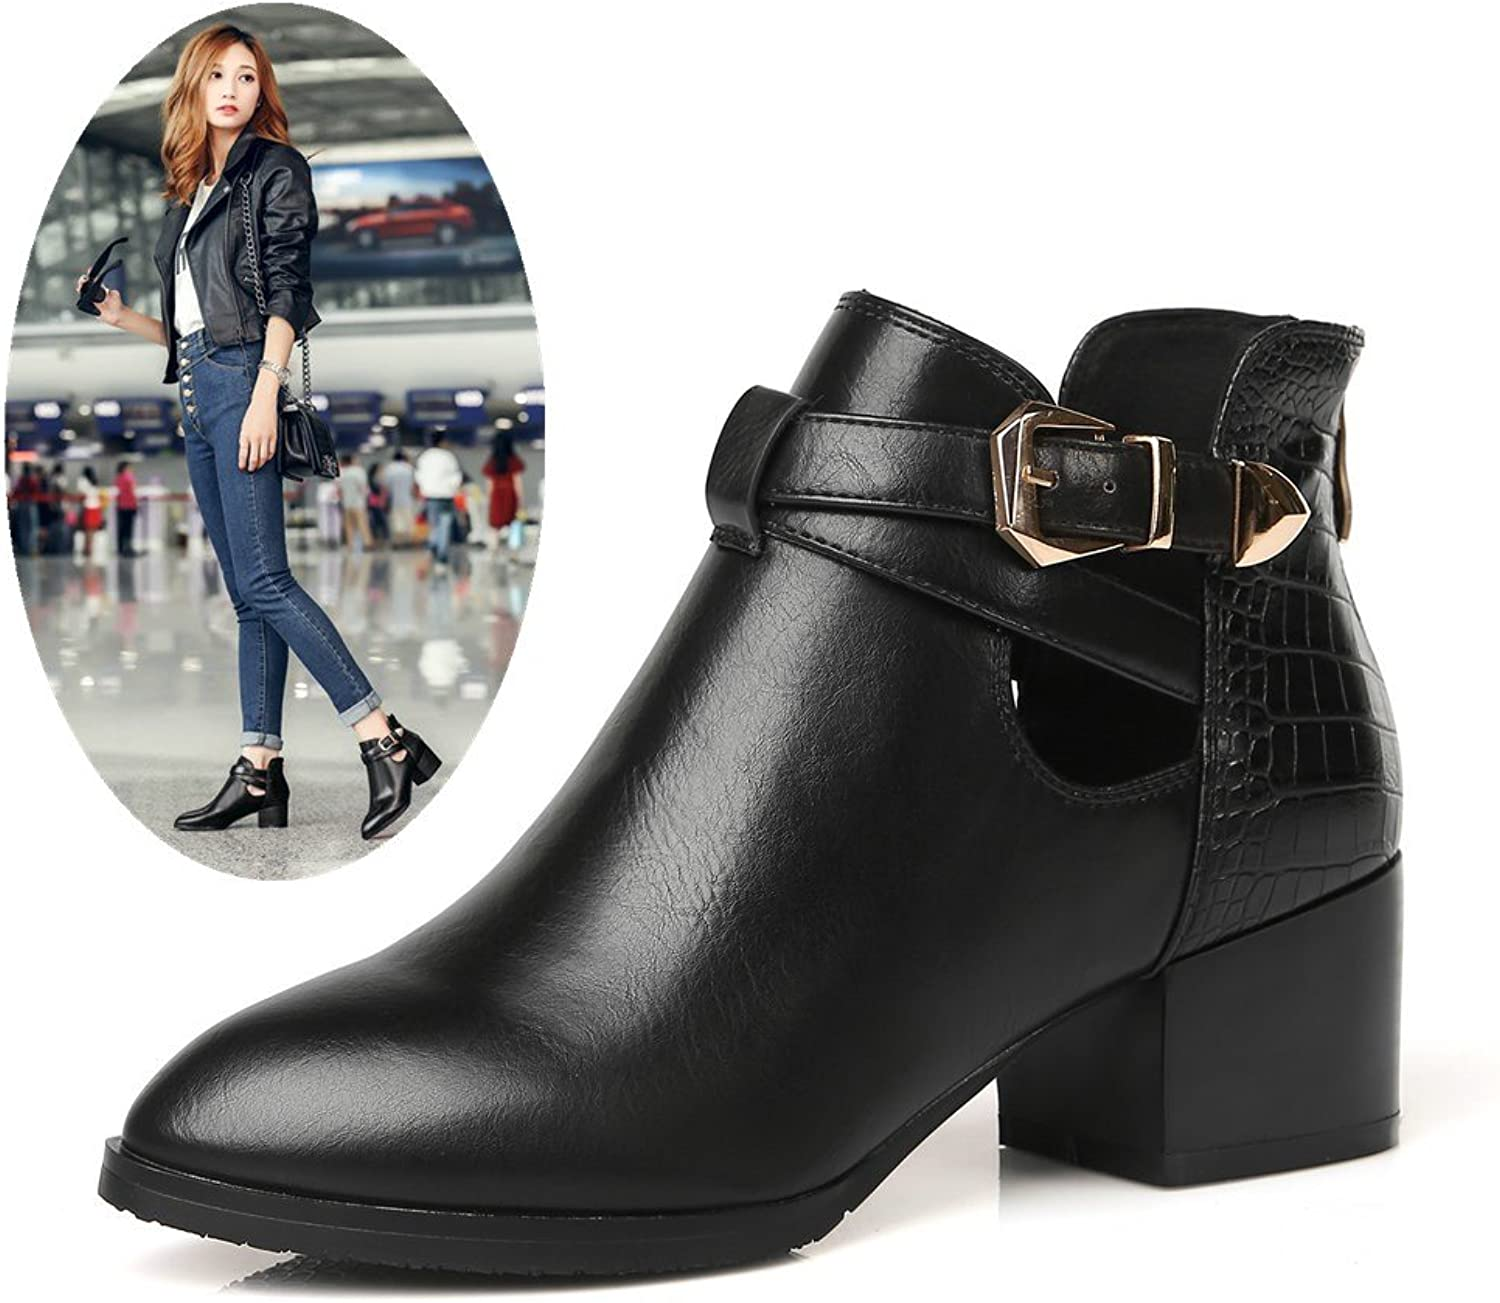 AnMengXinLing Women Low Heel Ankle Leather Boots Fashion Buckle Chunky Heel Pointed Toe Slip On Chelsea Boots